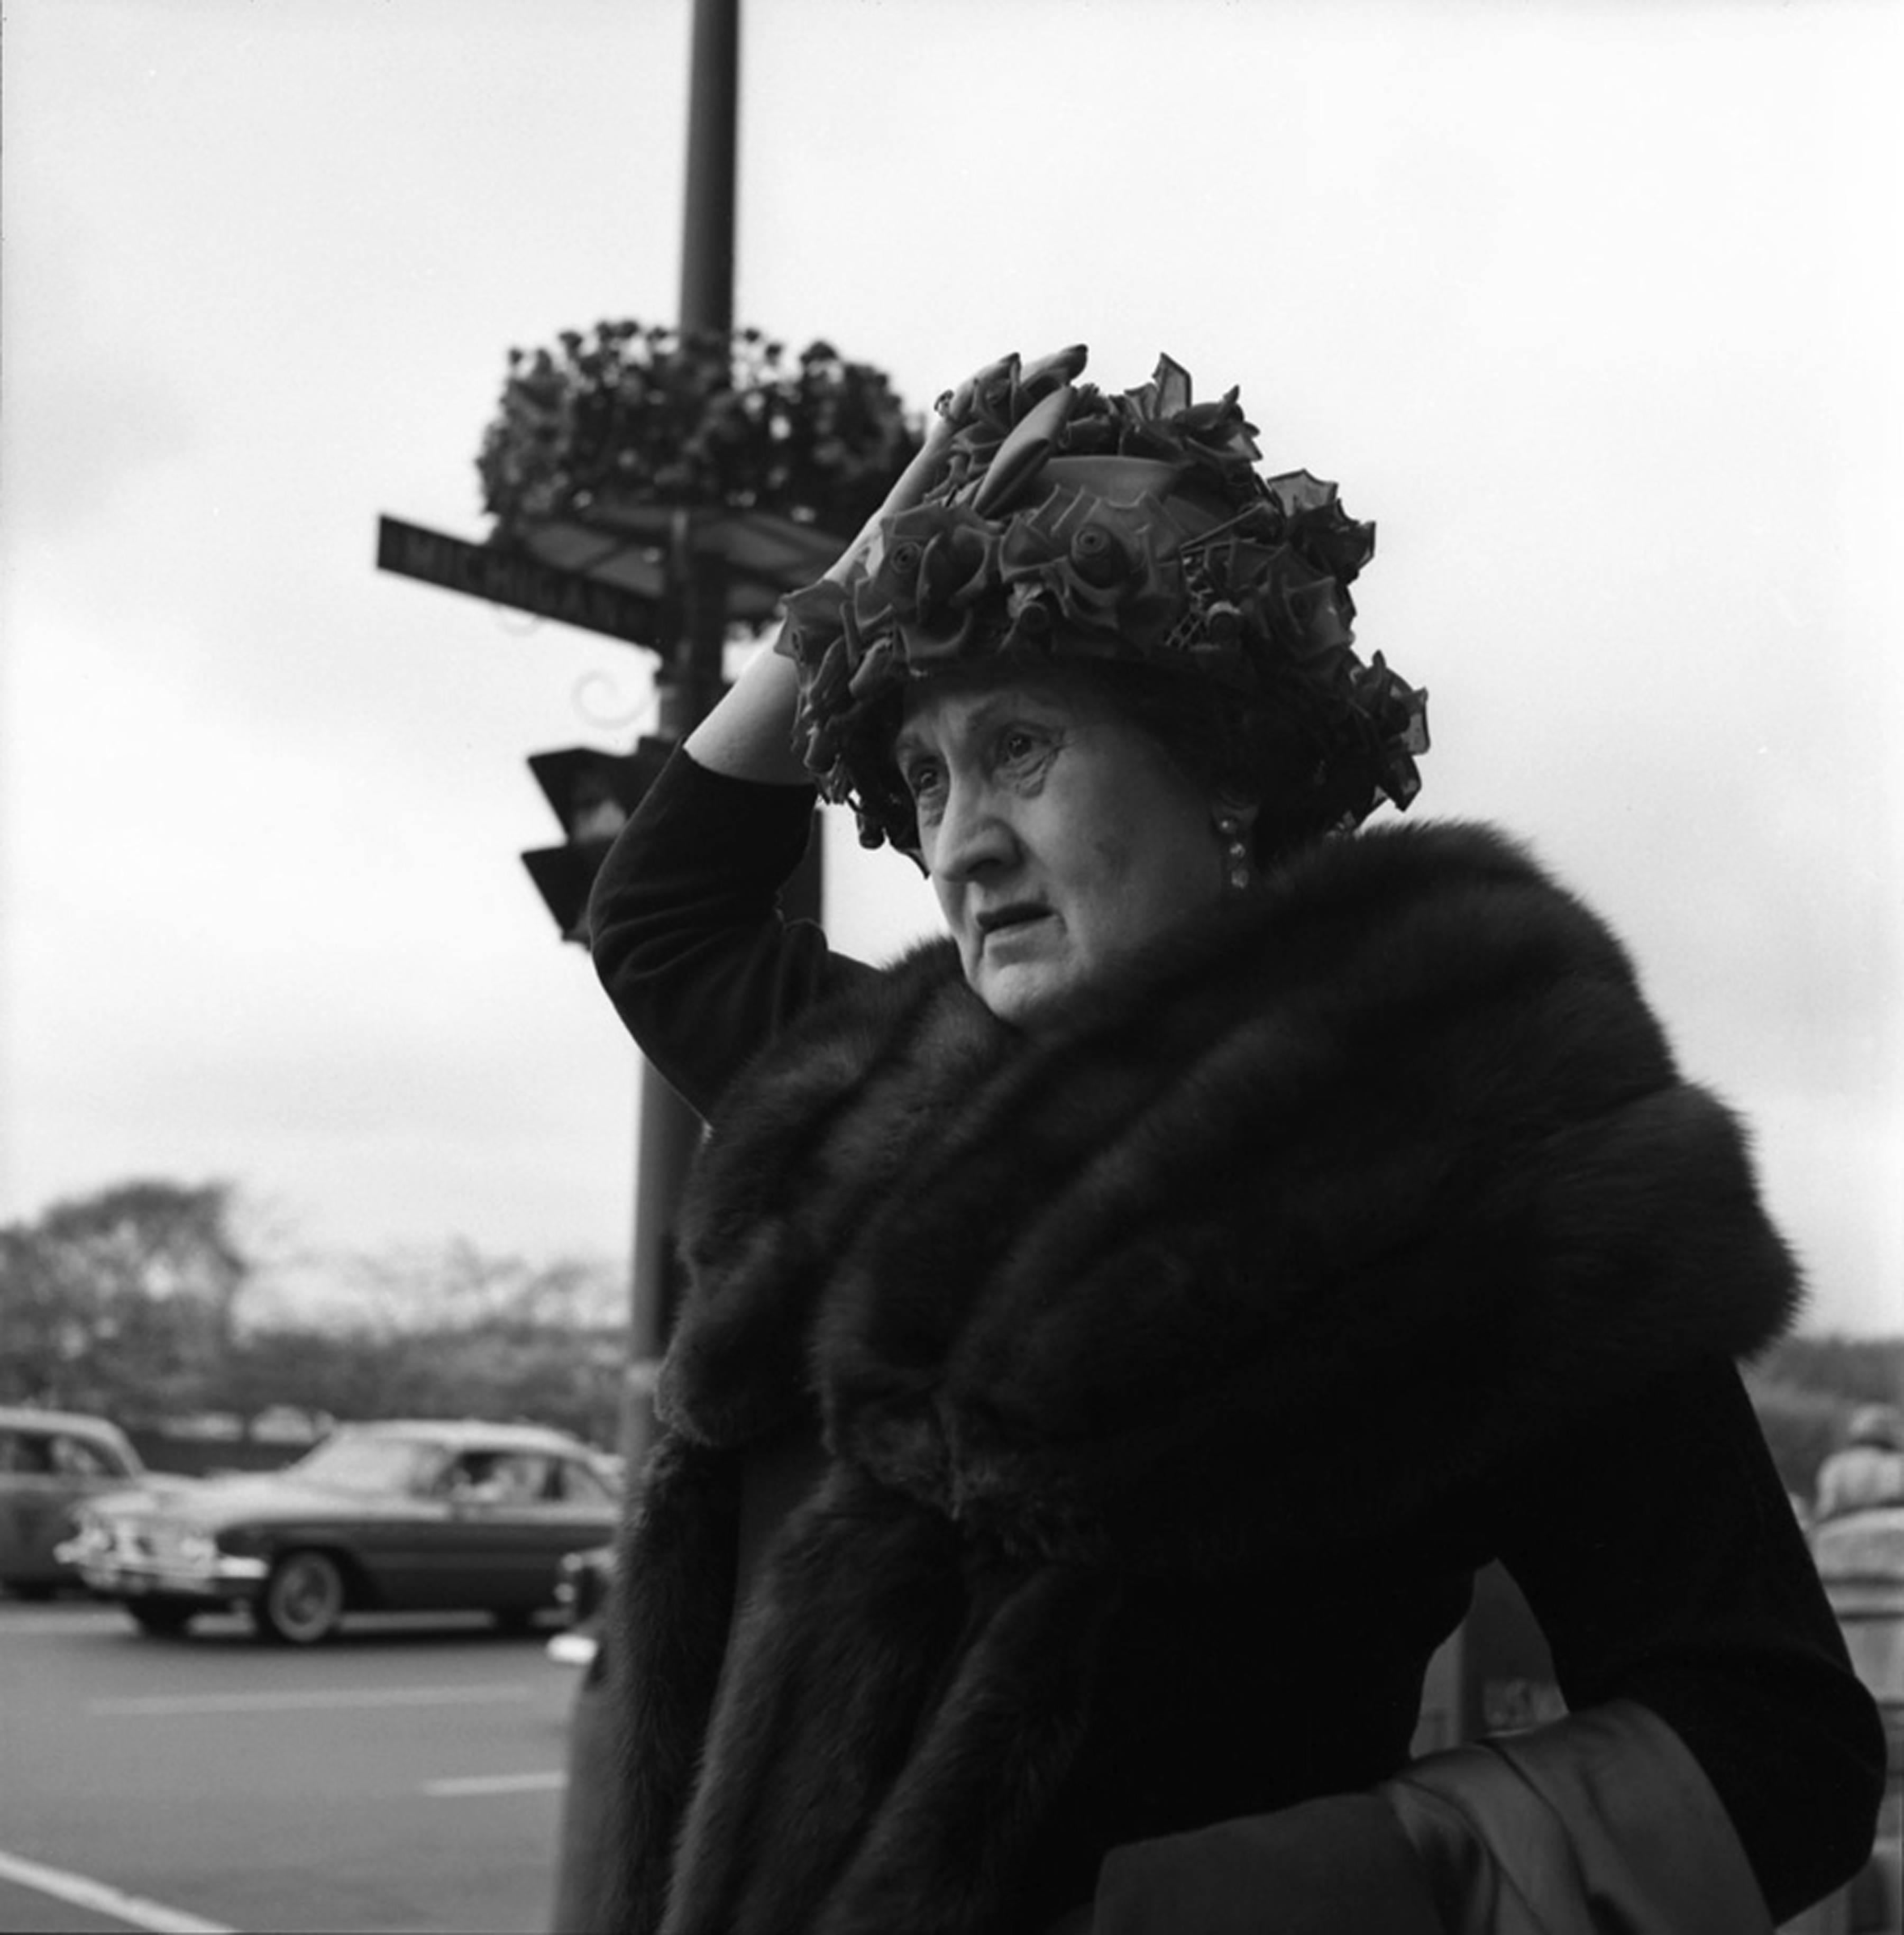 Vivian Maier took this photo of a woman in a floral hat on Michigan Avenue in Chicago in 1961.